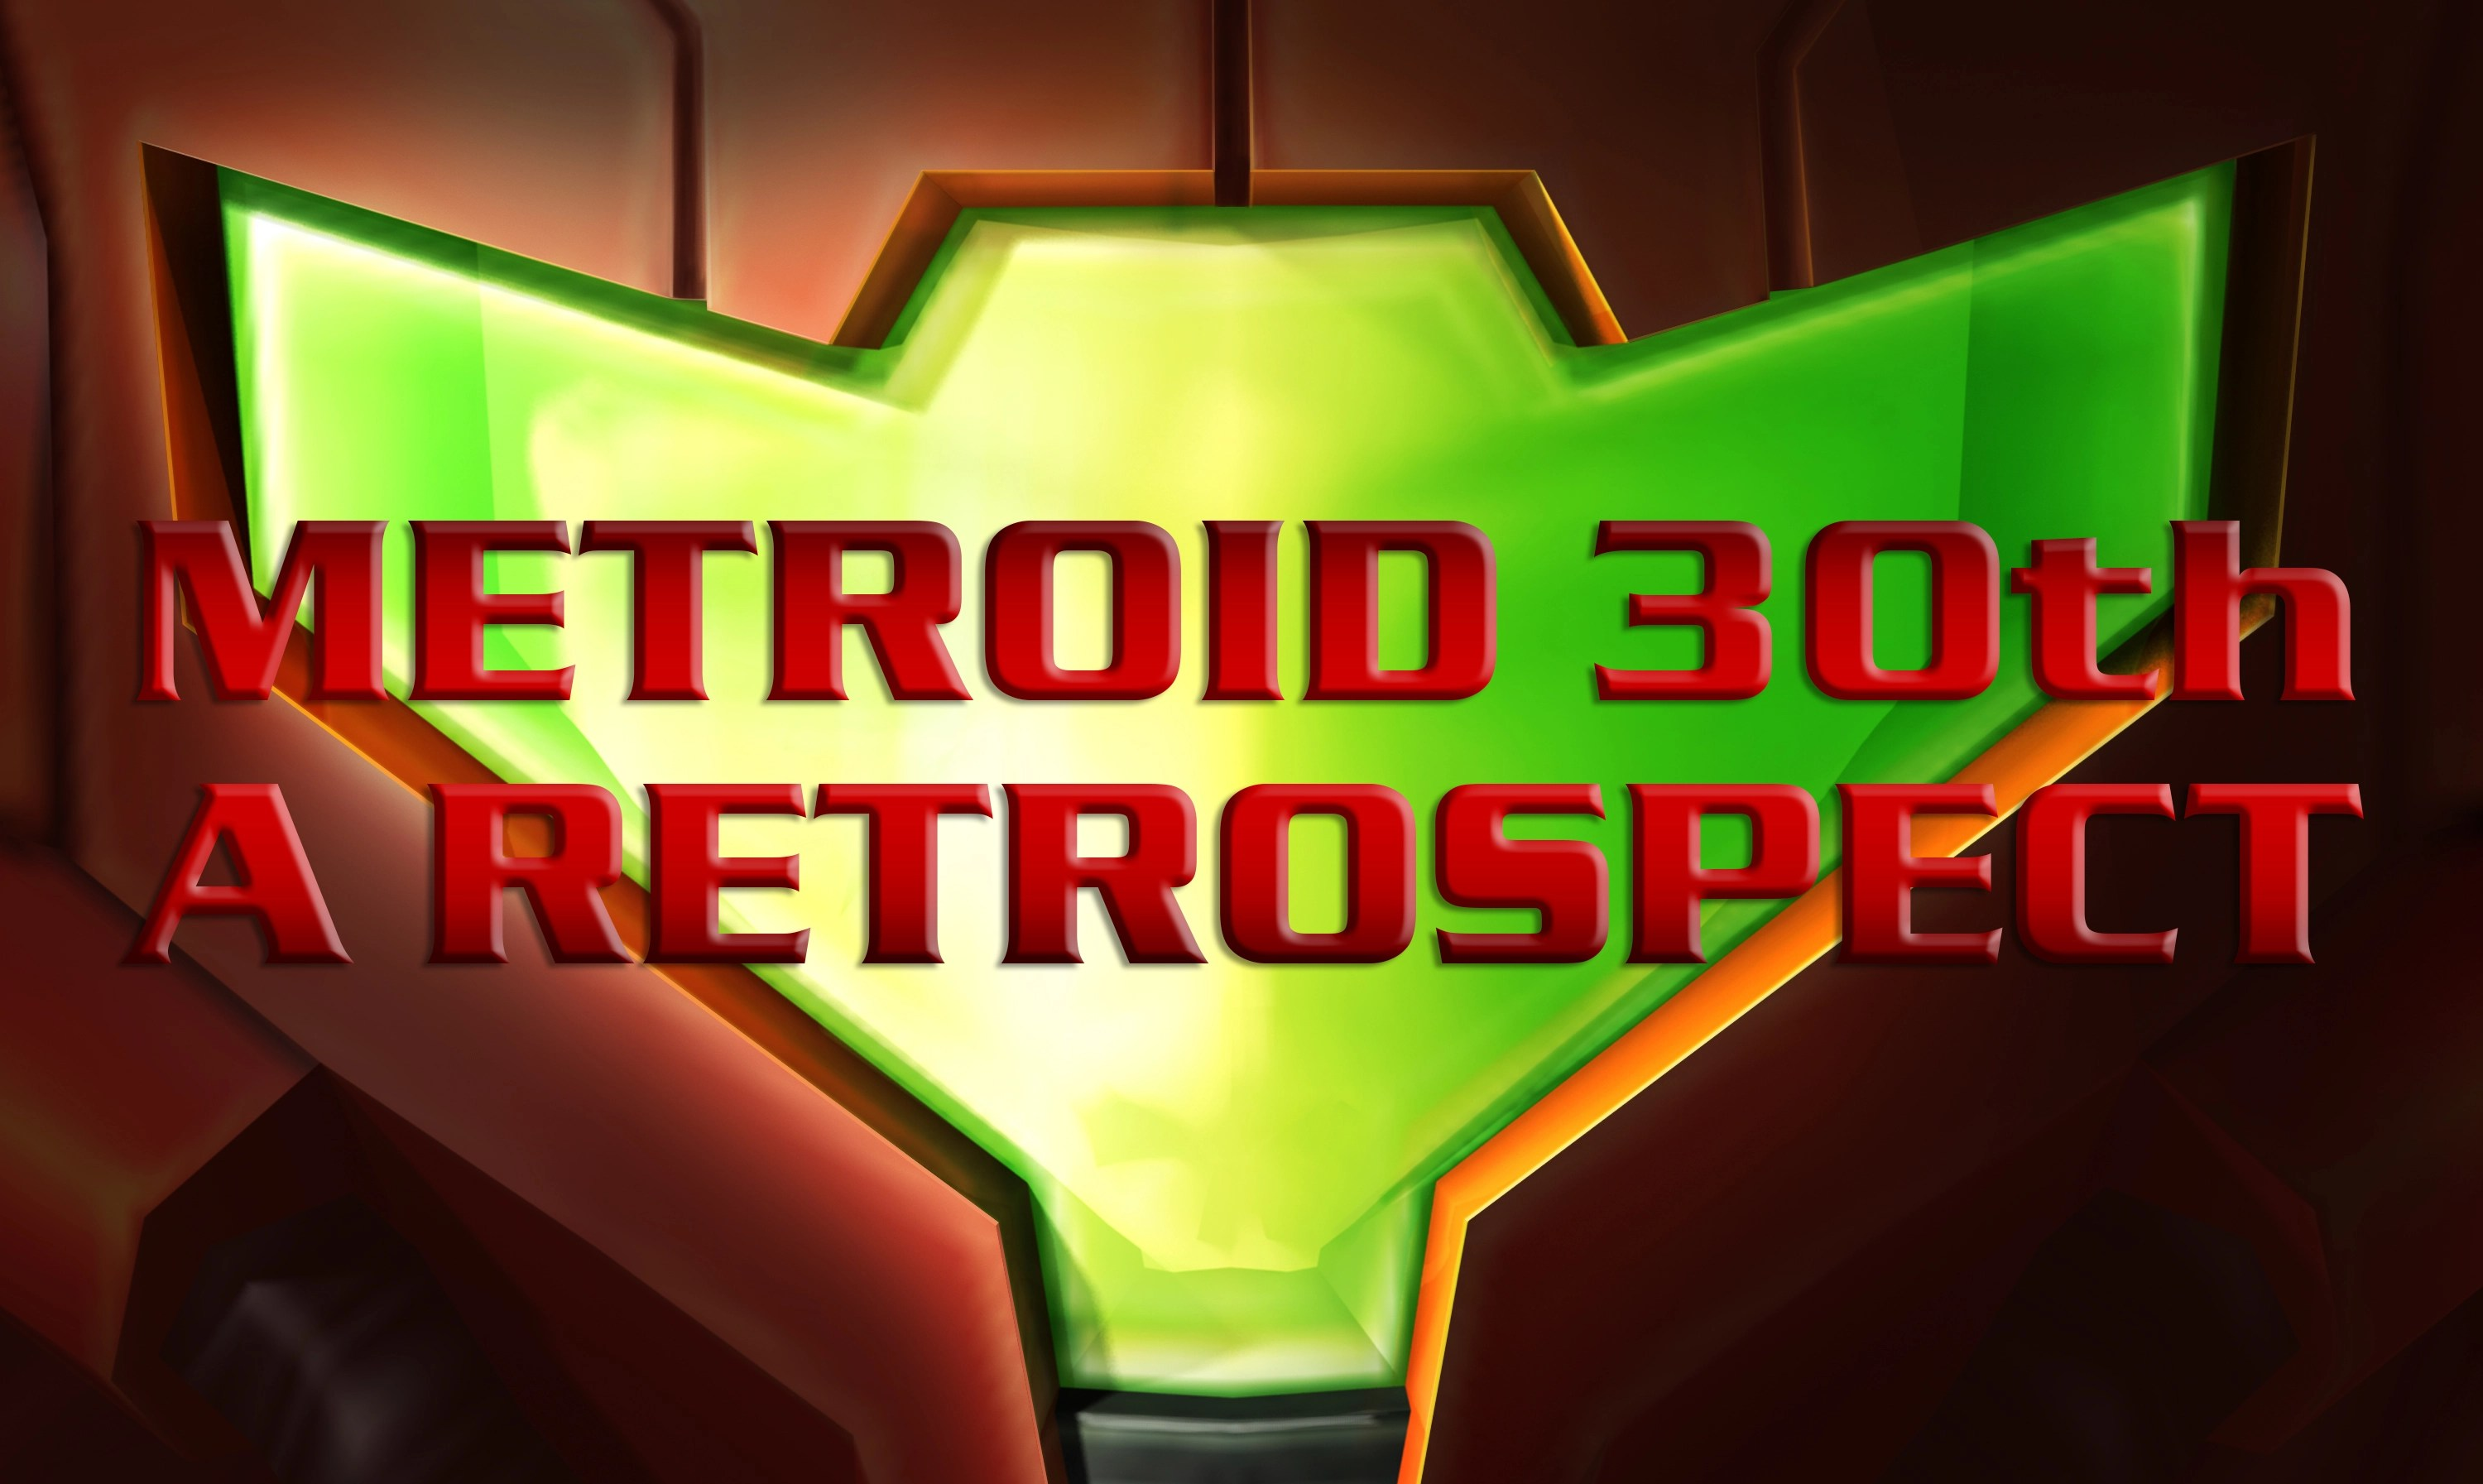 Metroid 30th - A Retrospect